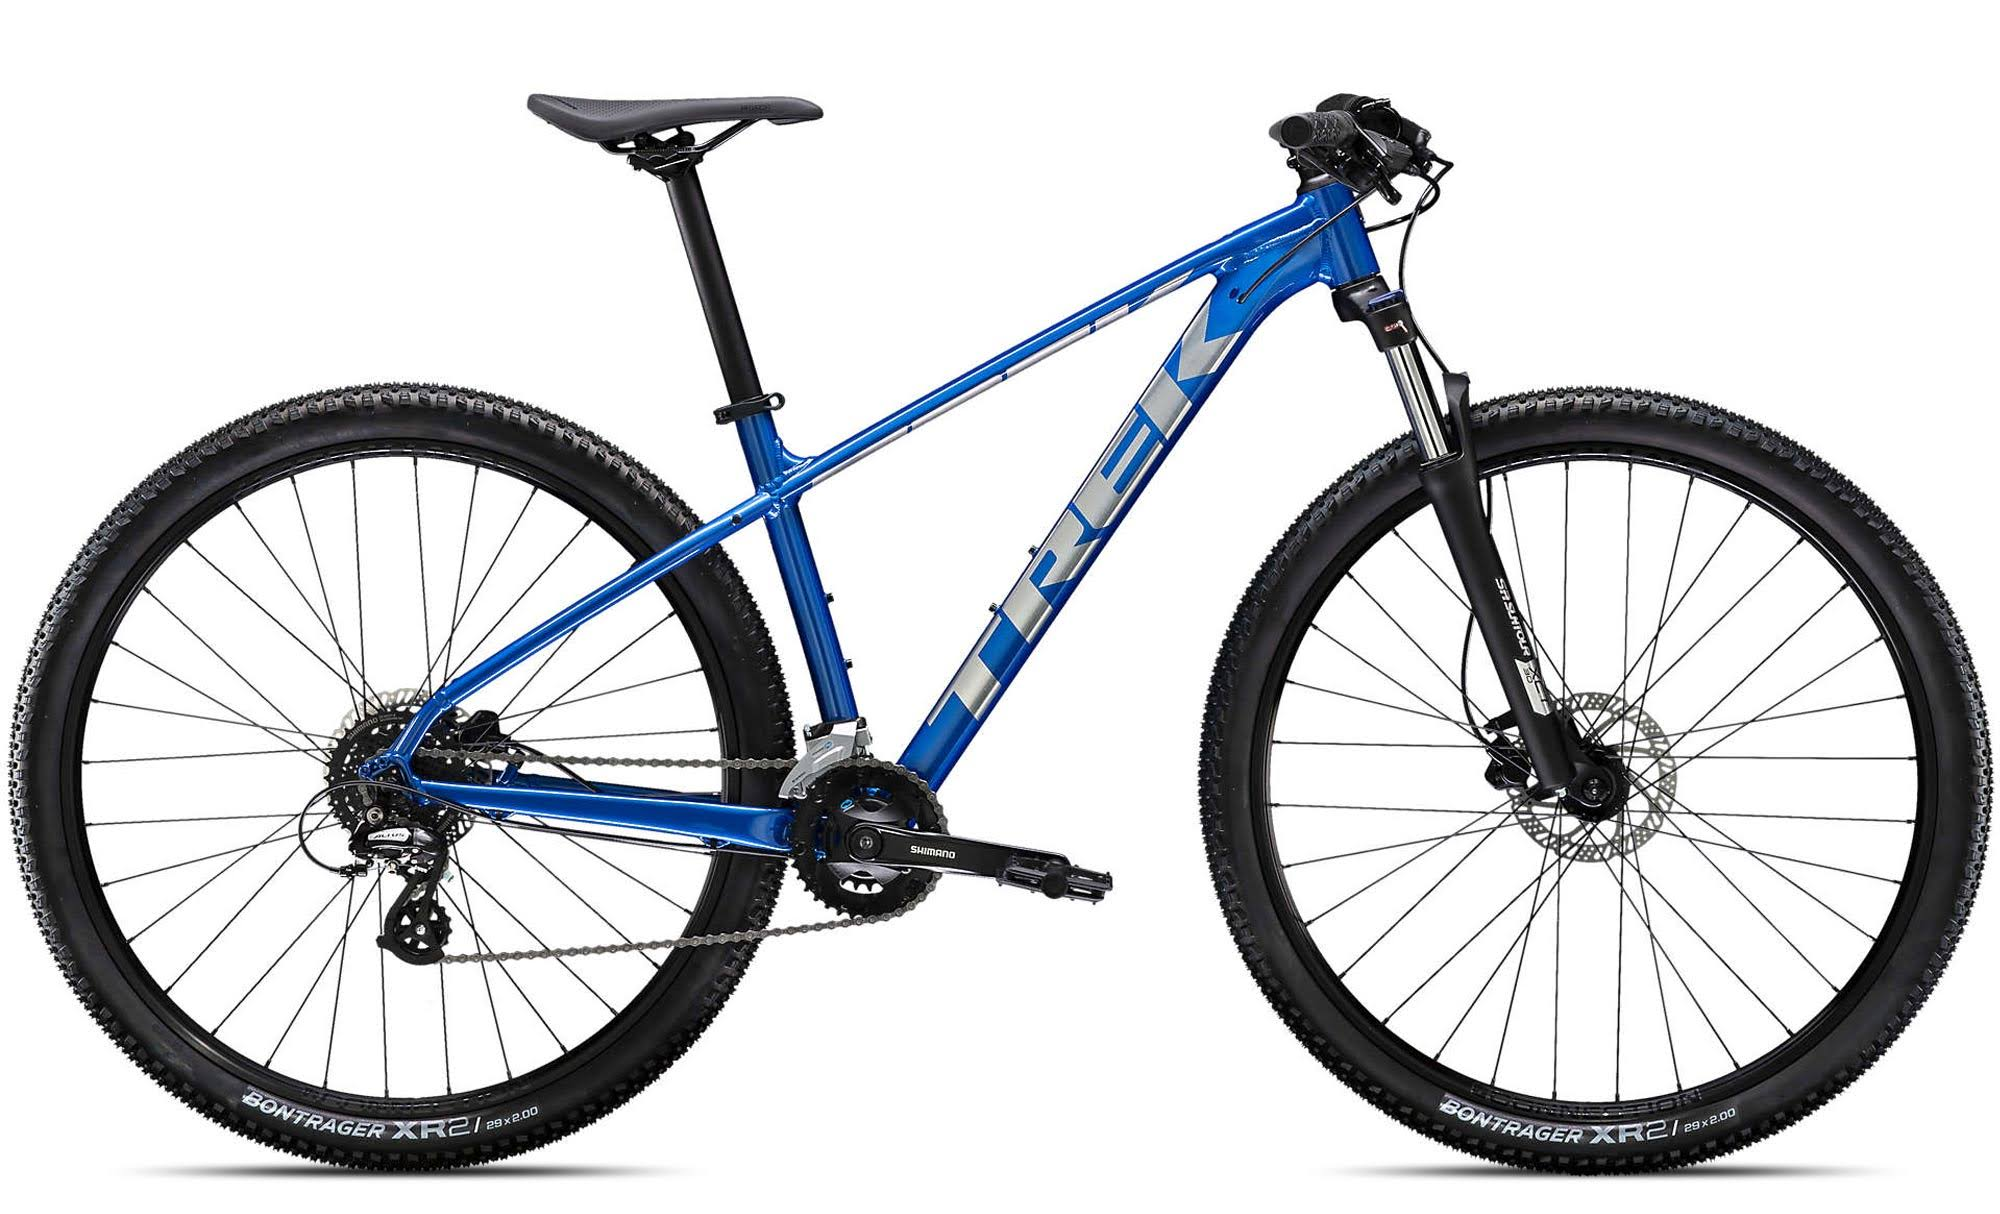 Trek Marlin 6 Hardtail Trail Bike - Blue